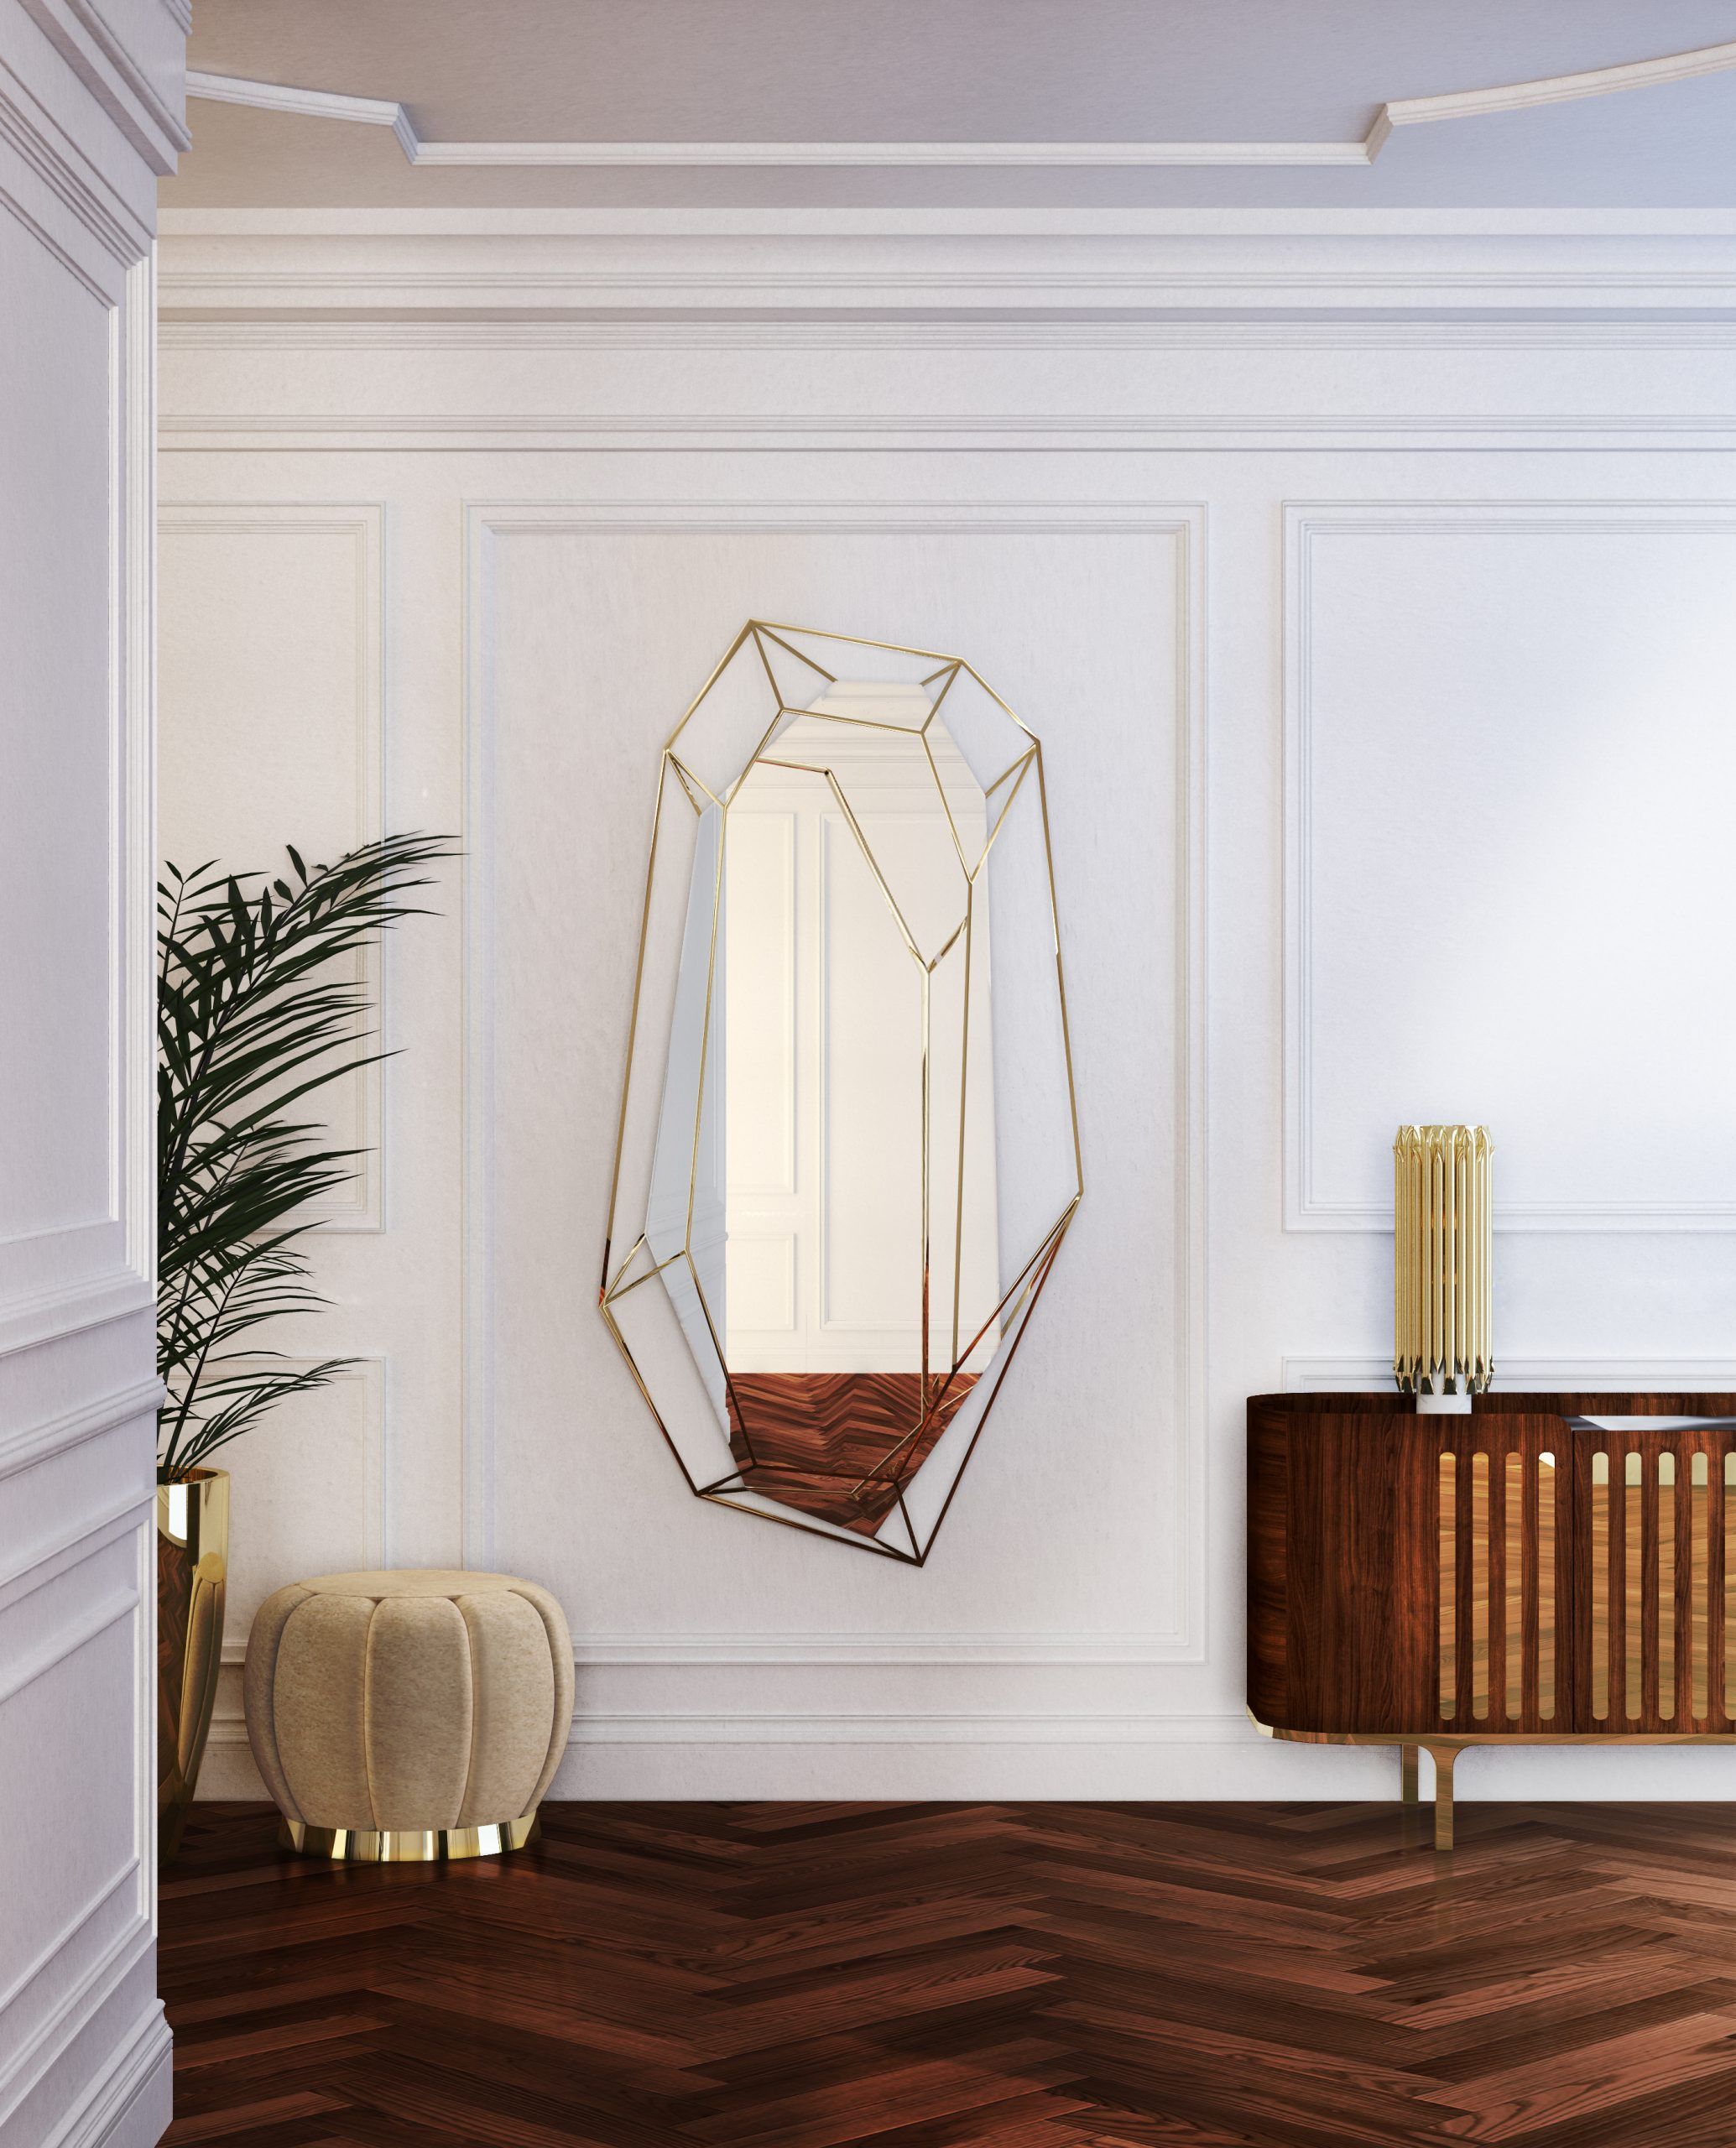 Incredible Home Design Tips to Use Mirrors! home design Home Design Tips To Use Mirrors The Right Way! deisgn tips 1 scaled